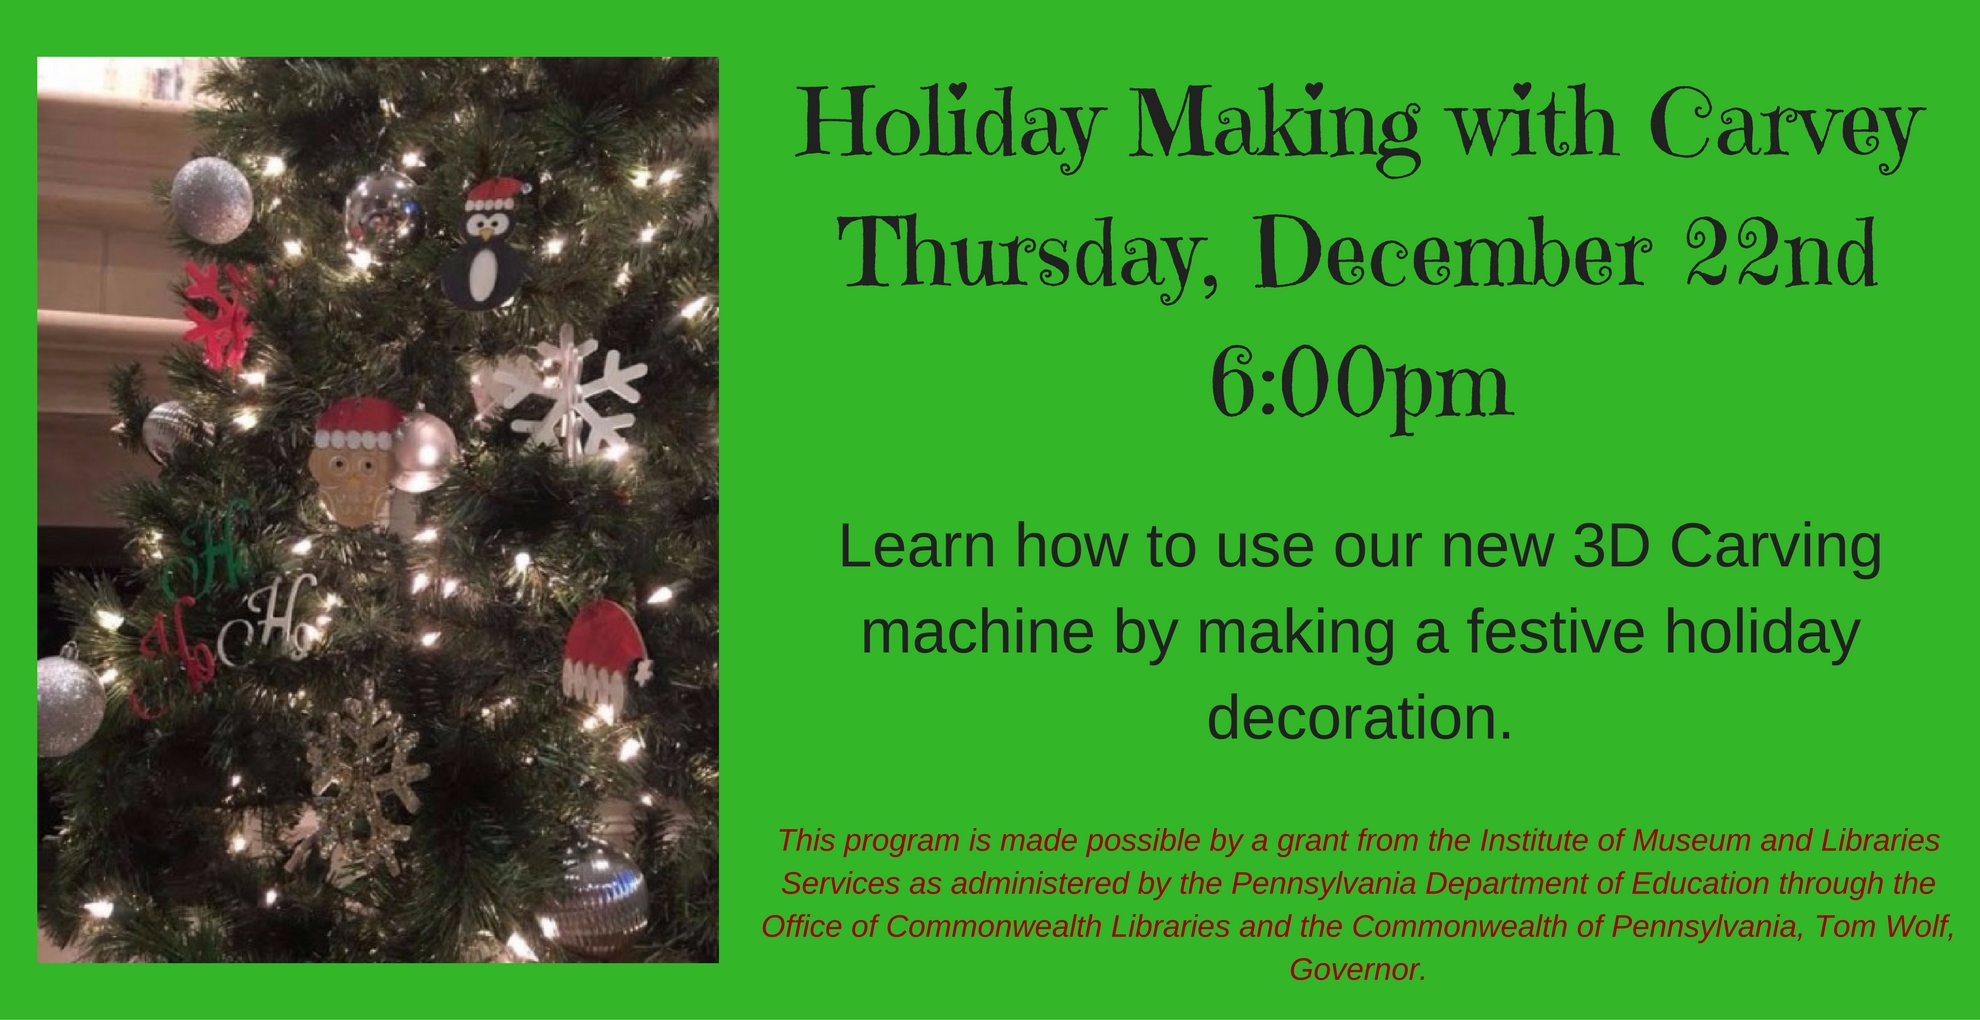 Holiday Making with Carvey